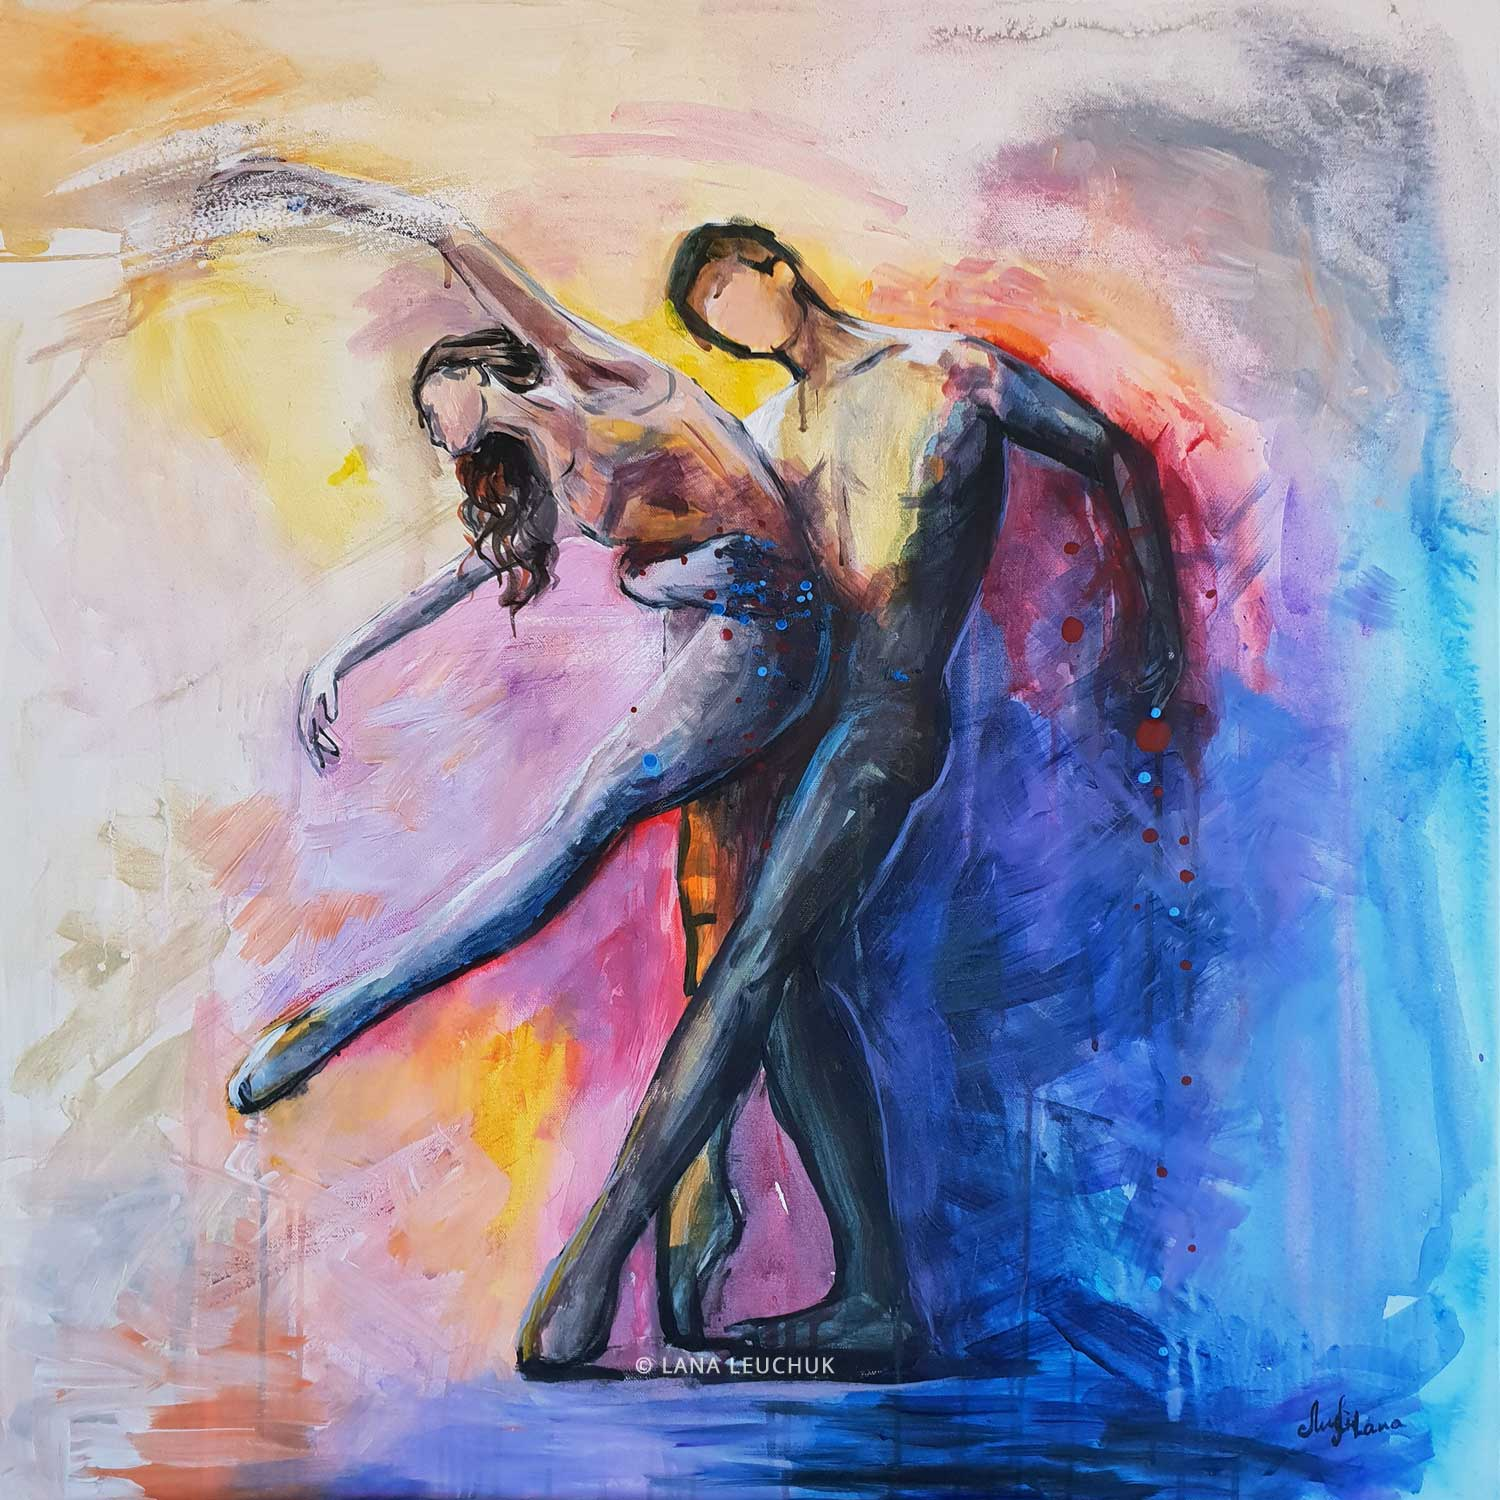 Dancing-with-a-Stranger-painting-by-Lana-Leuchuk-w